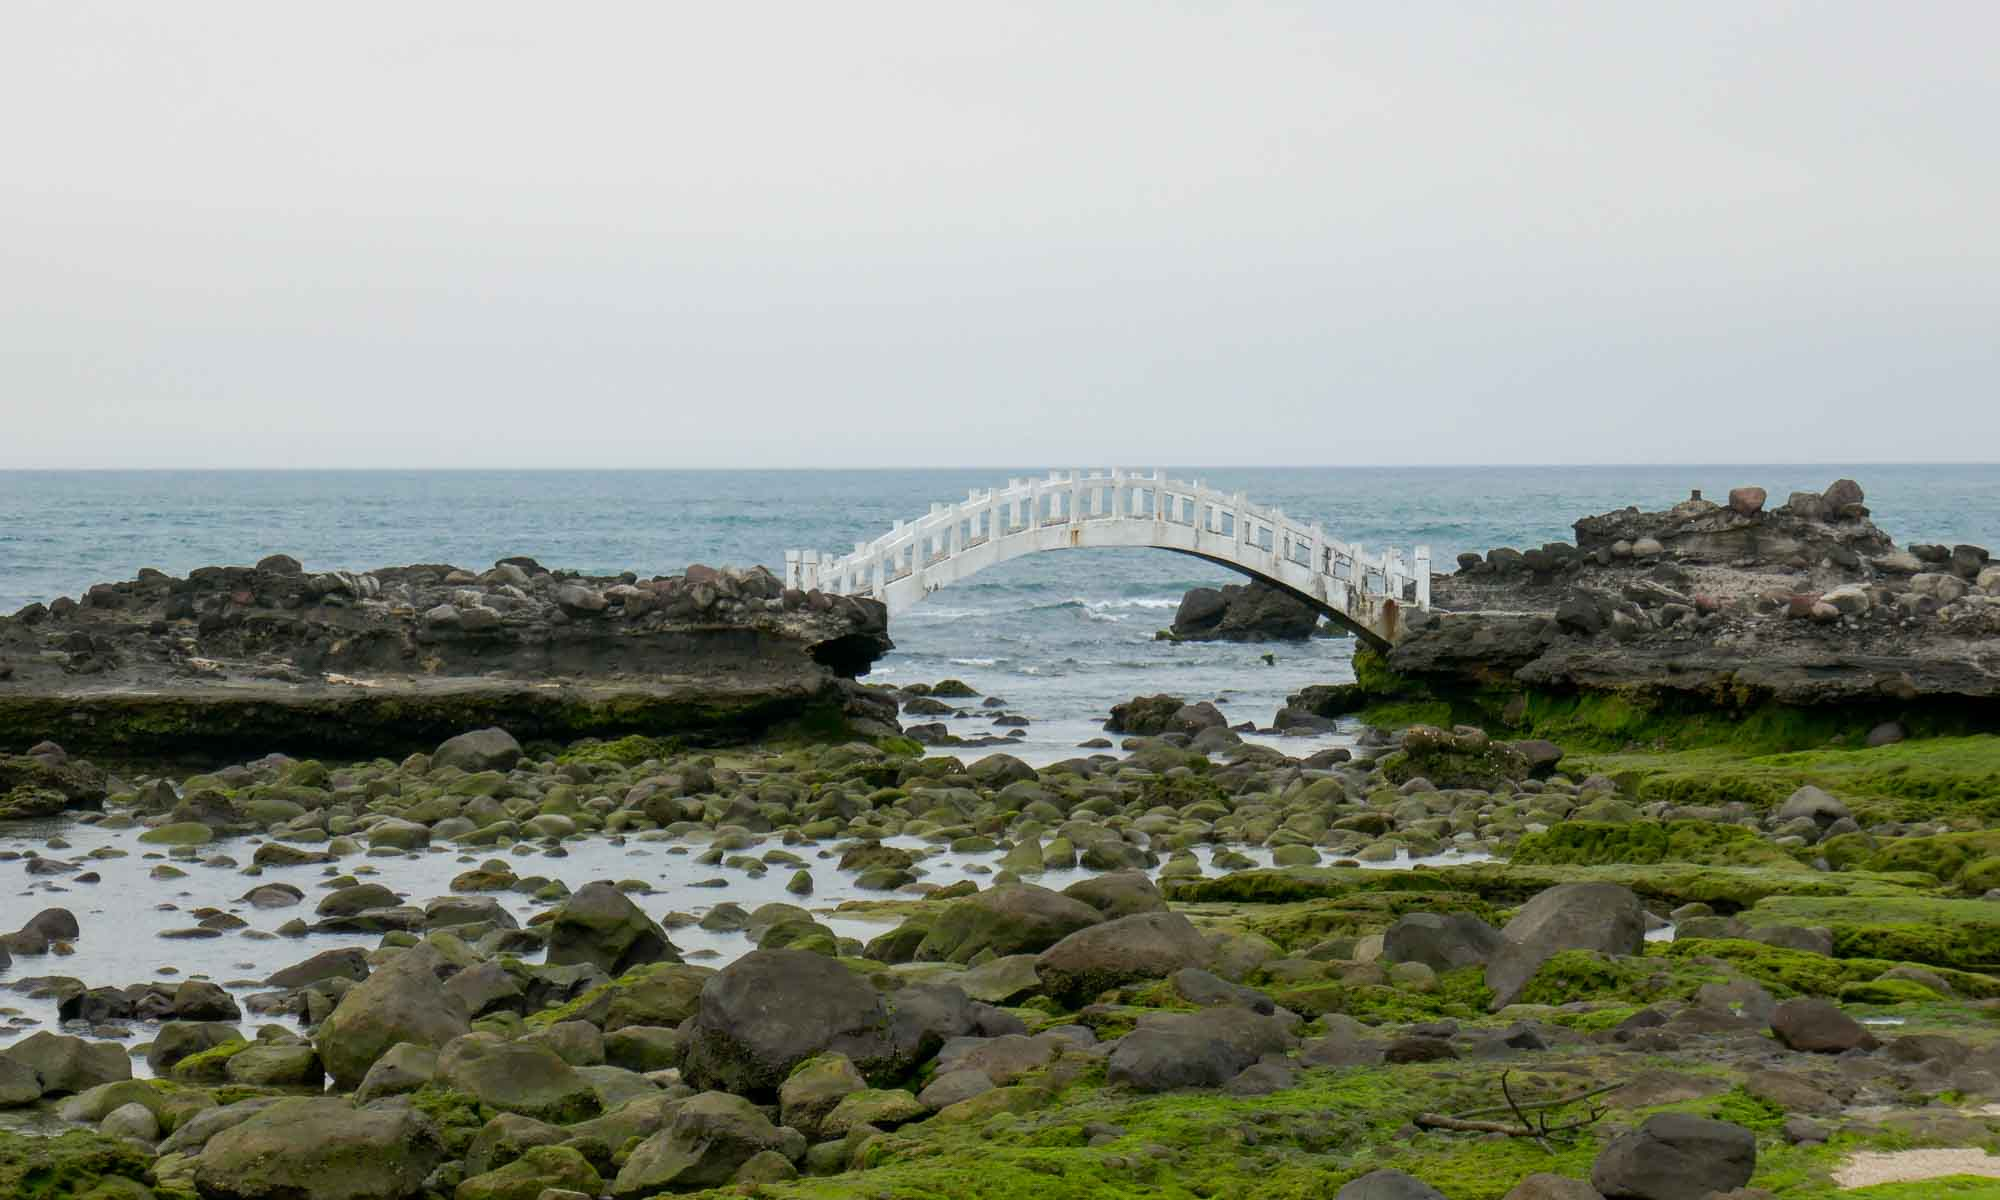 Small bridge in the sea behind the arch